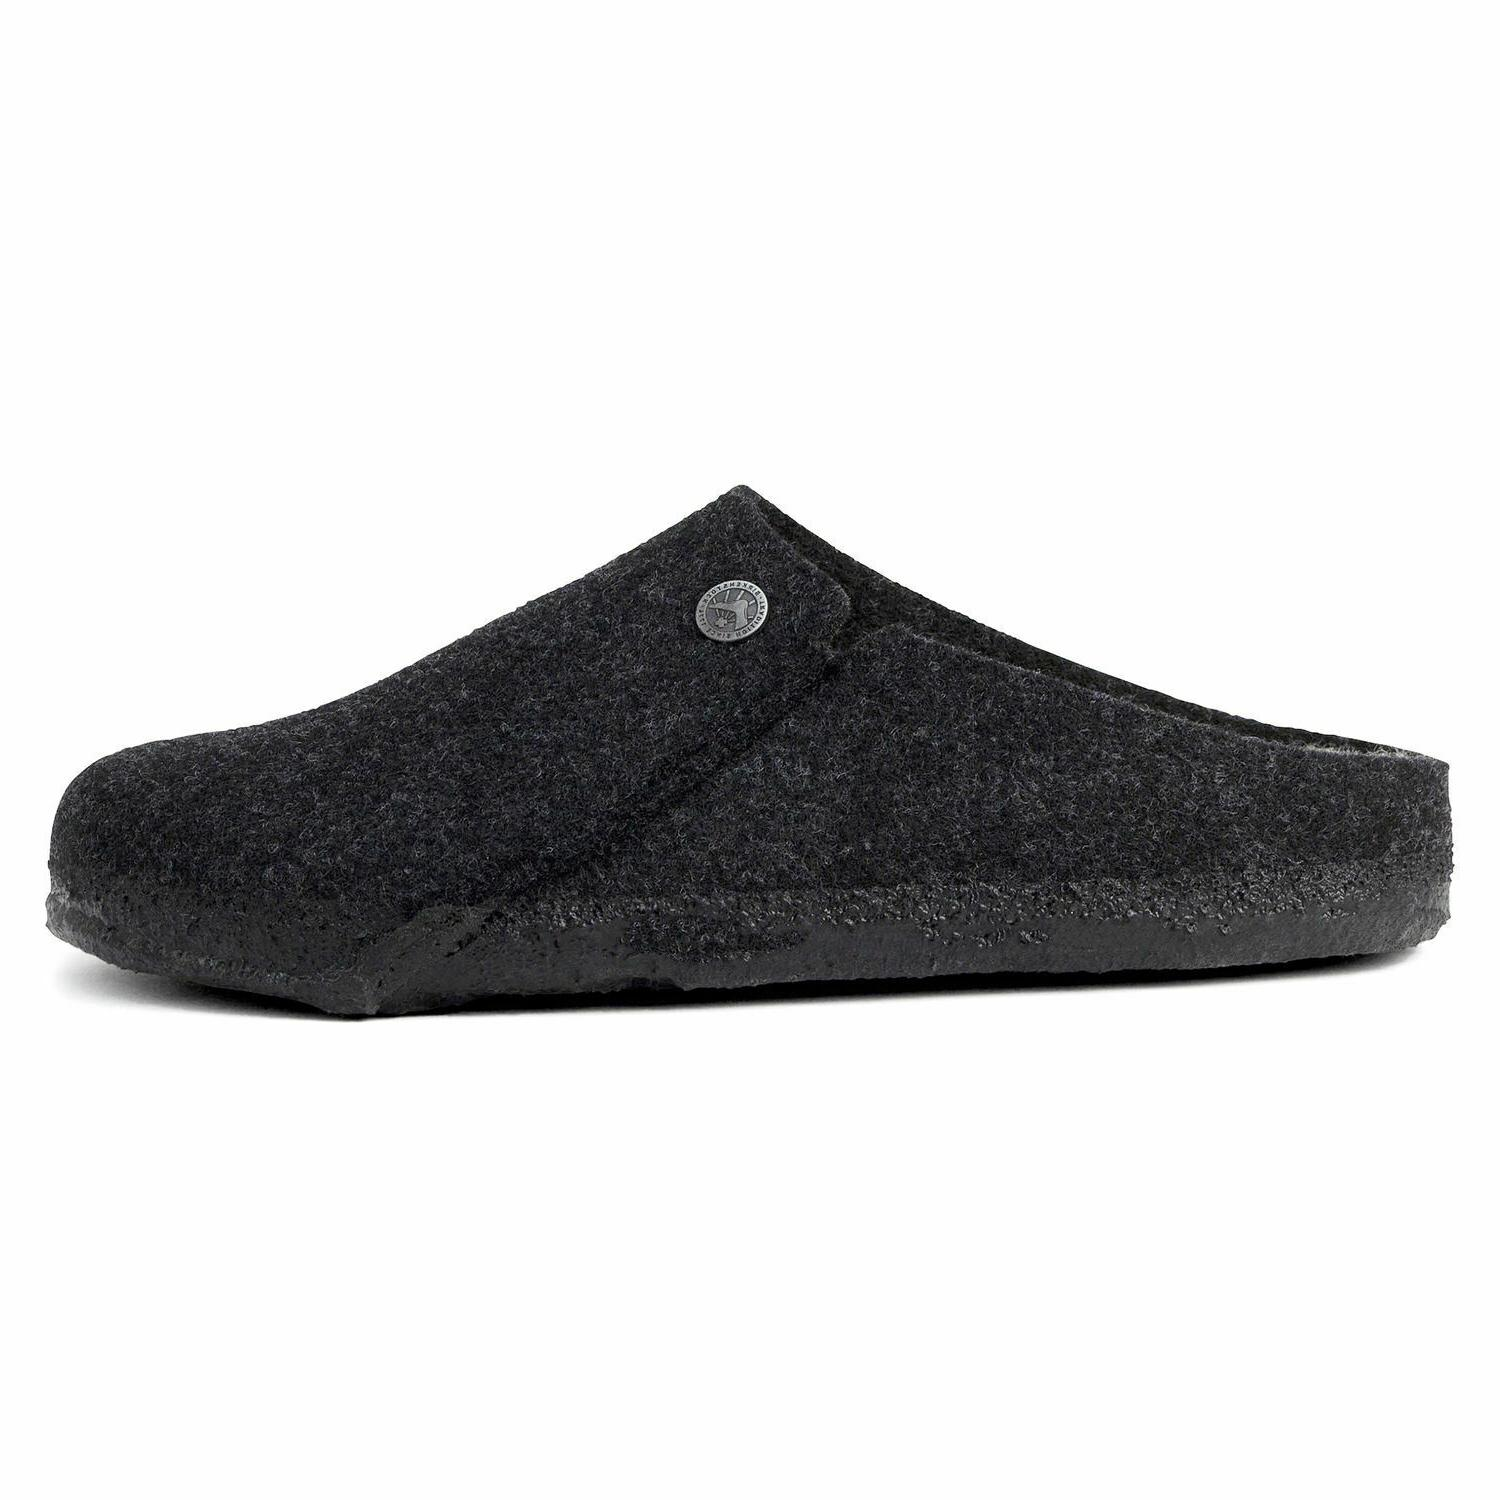 NEW Zermatt Anthracite Slipper - Choose Width